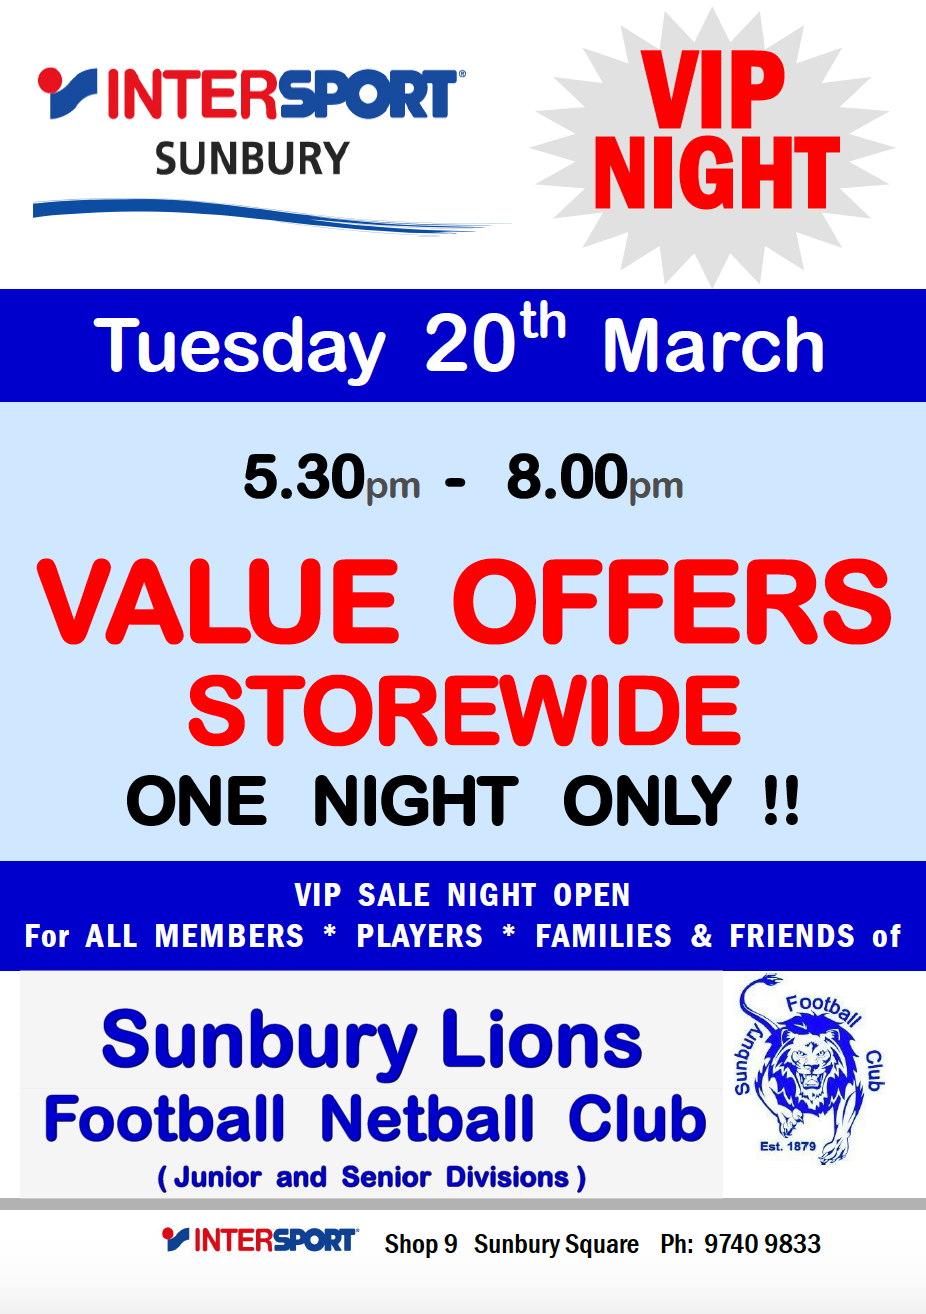 InterSport Sunbury VIP Night